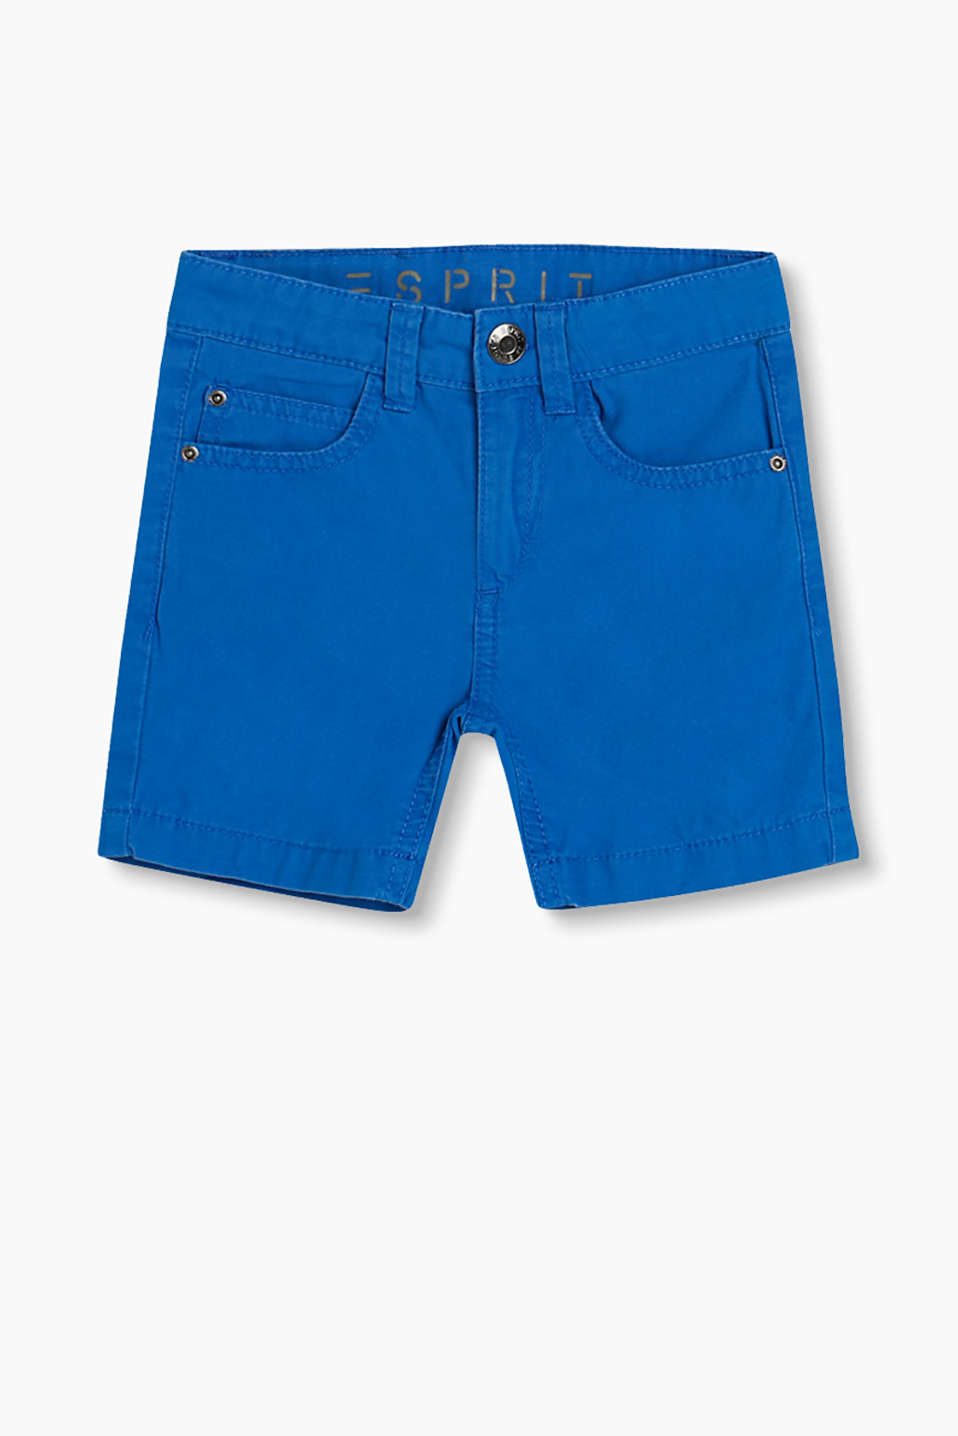 Soft woven shorts in cotton with a practical, adjustable waistband